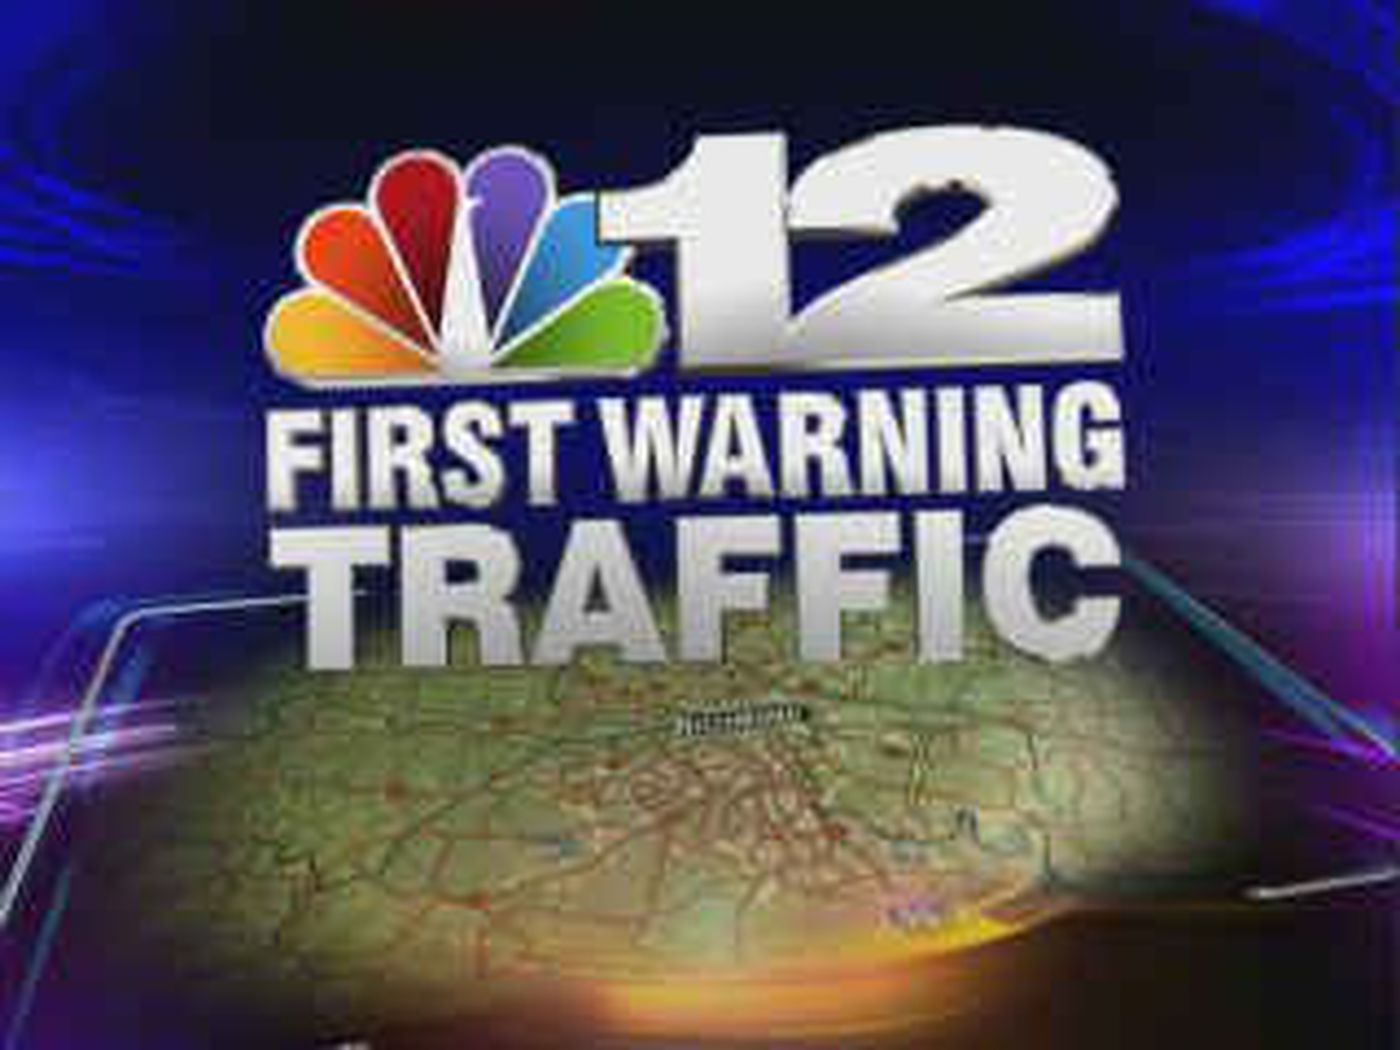 Tractor-trailer crash slows traffic on I-95 in Petersburg